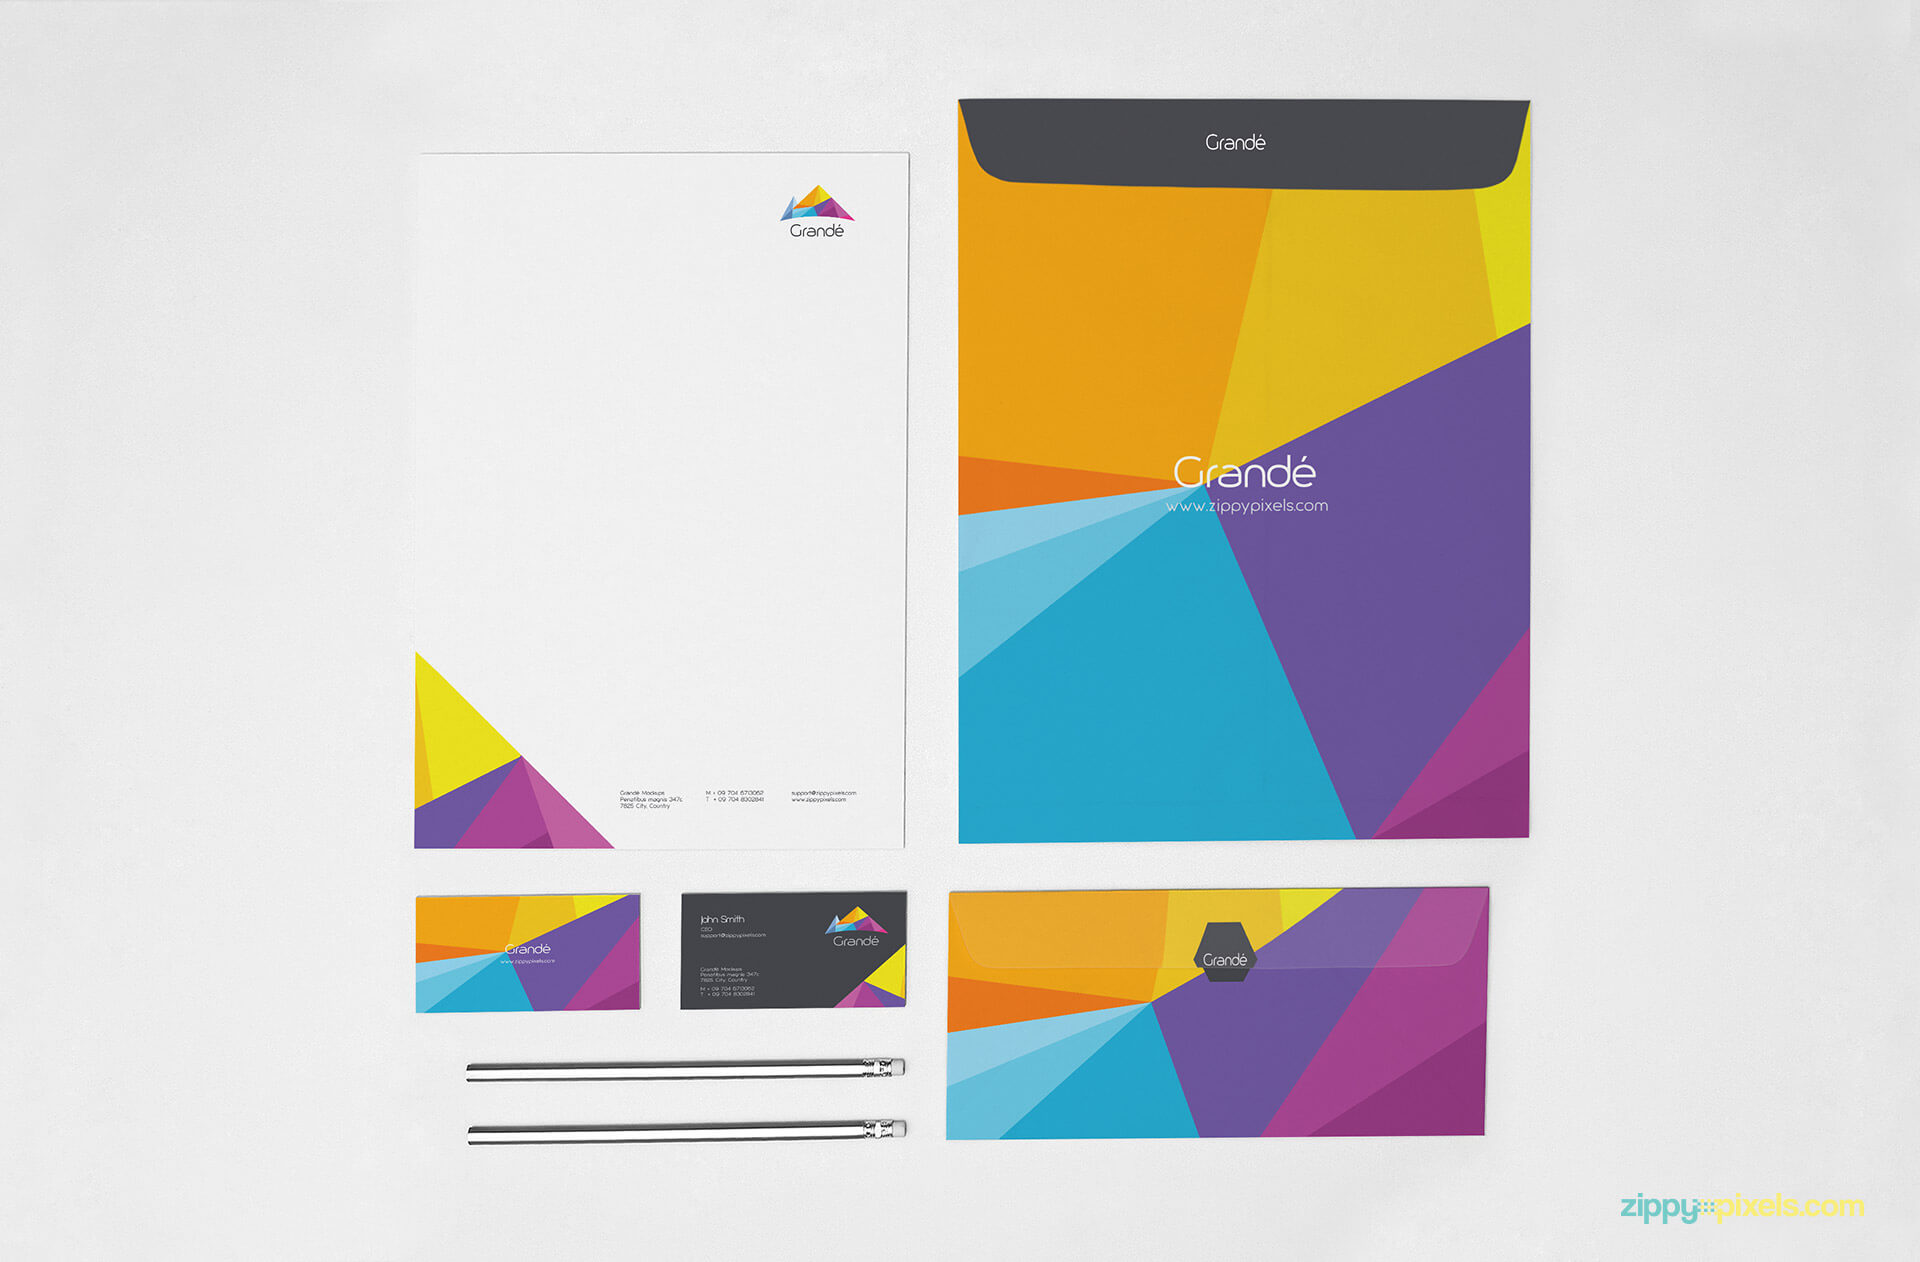 Stationery Mockup of A4 Letterhead, A4 Envelope, Letter Envelope and Business Cards